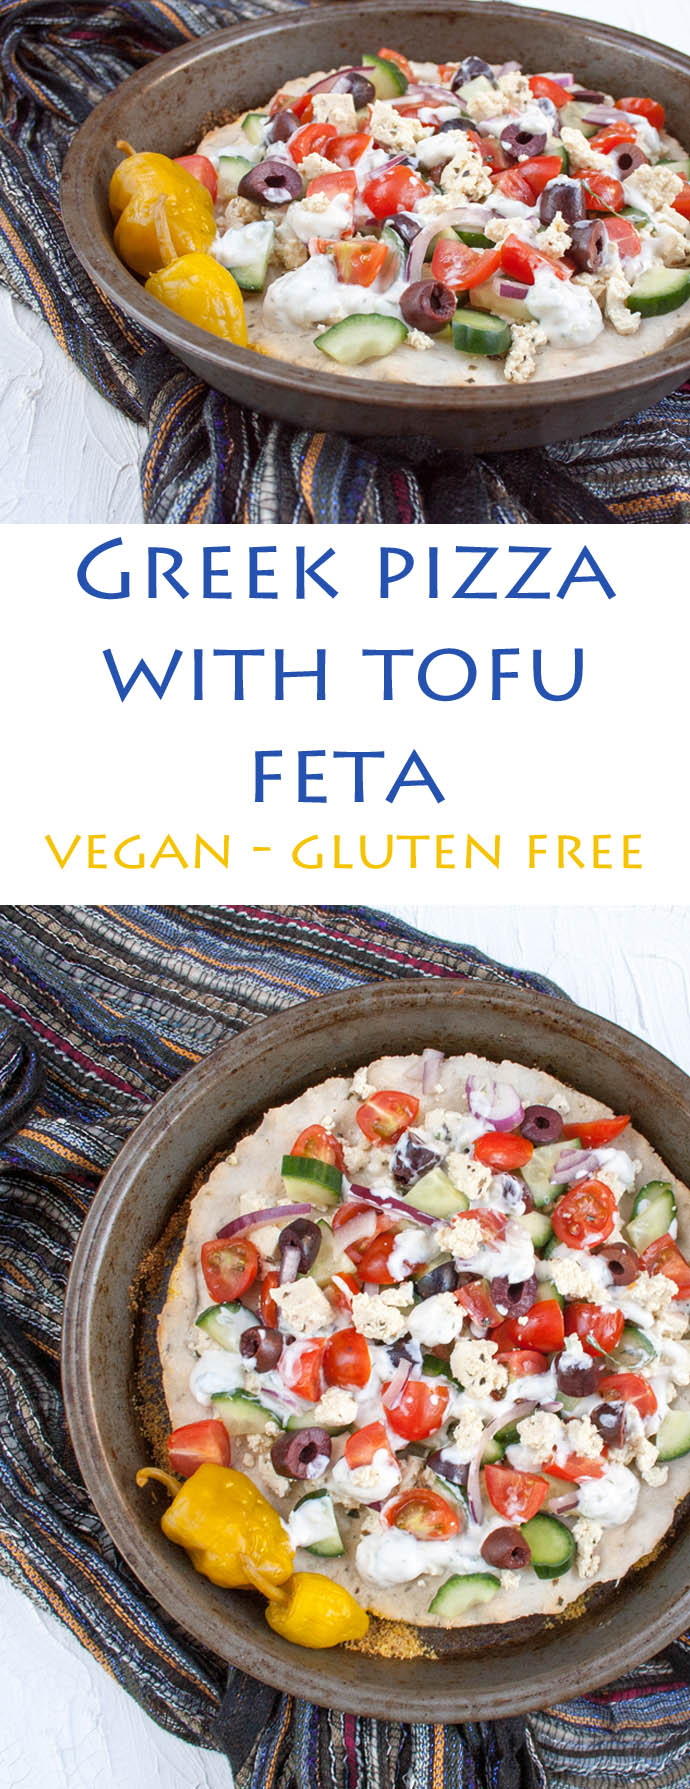 Greek Pizza with Tofu Feta collage photo with text.